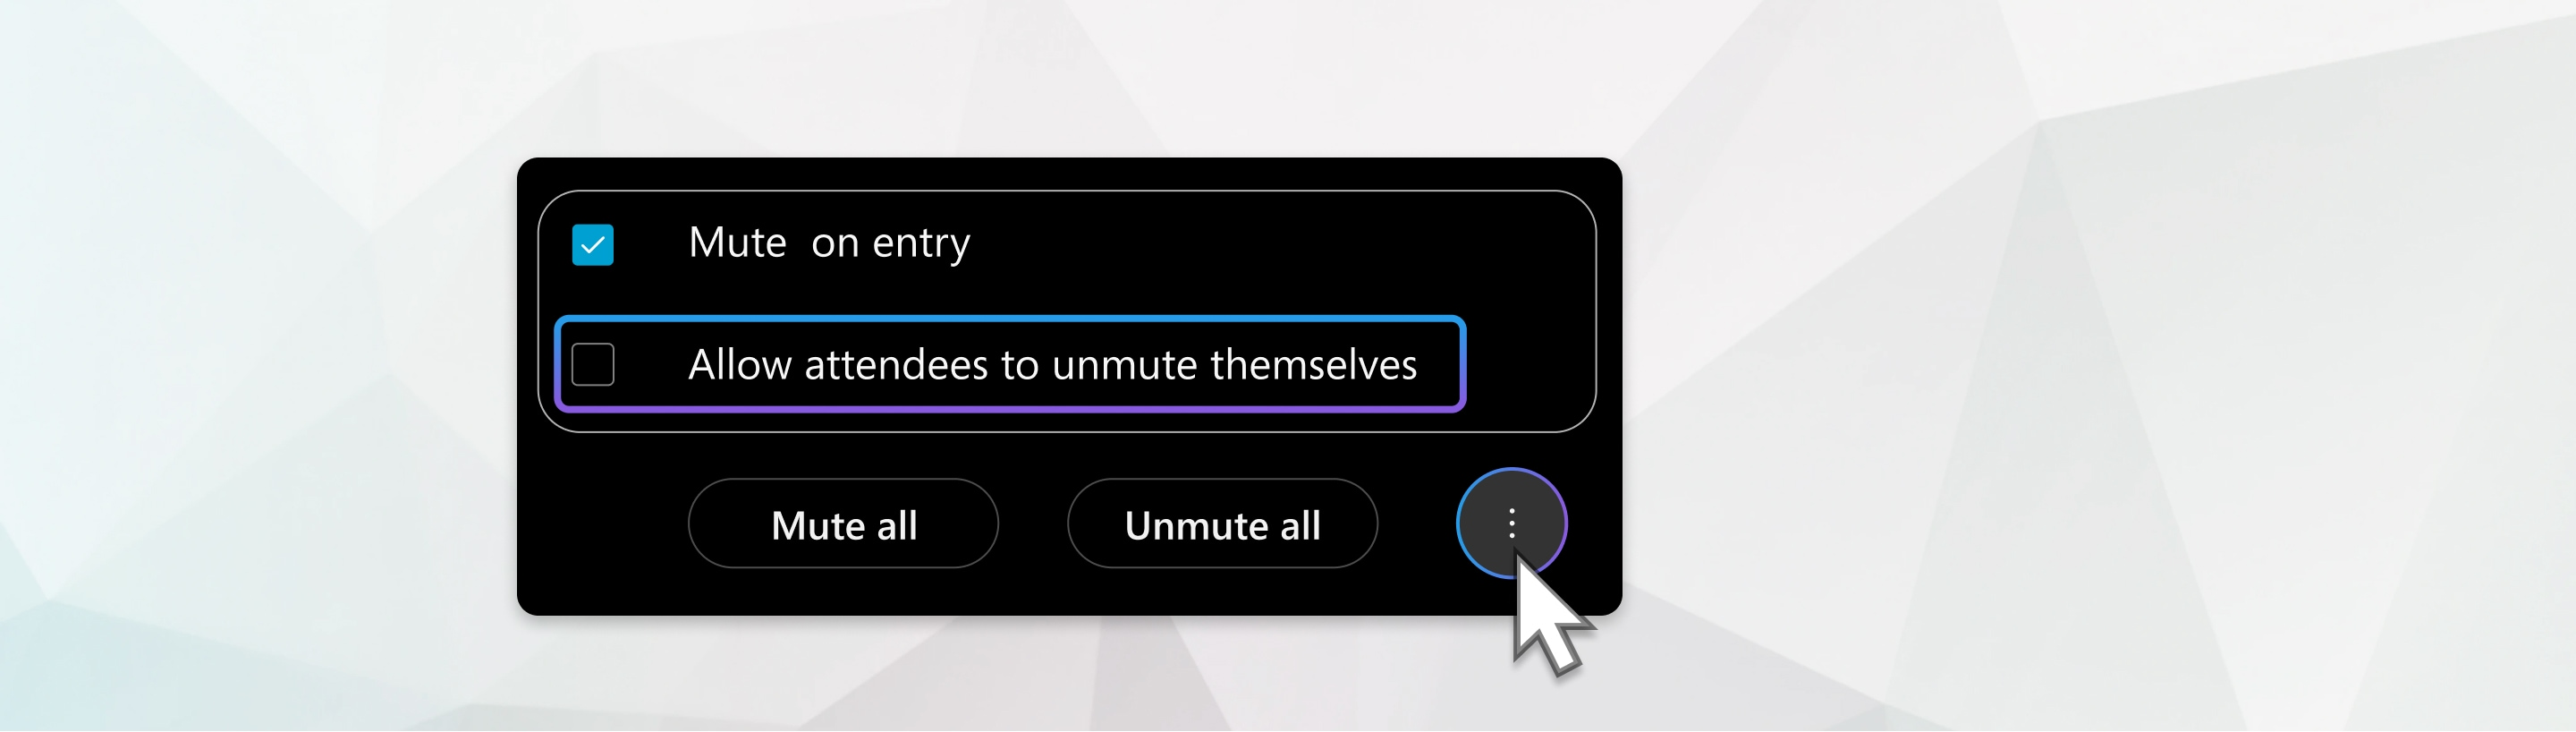 Allow attendees to unmute themselves menu option